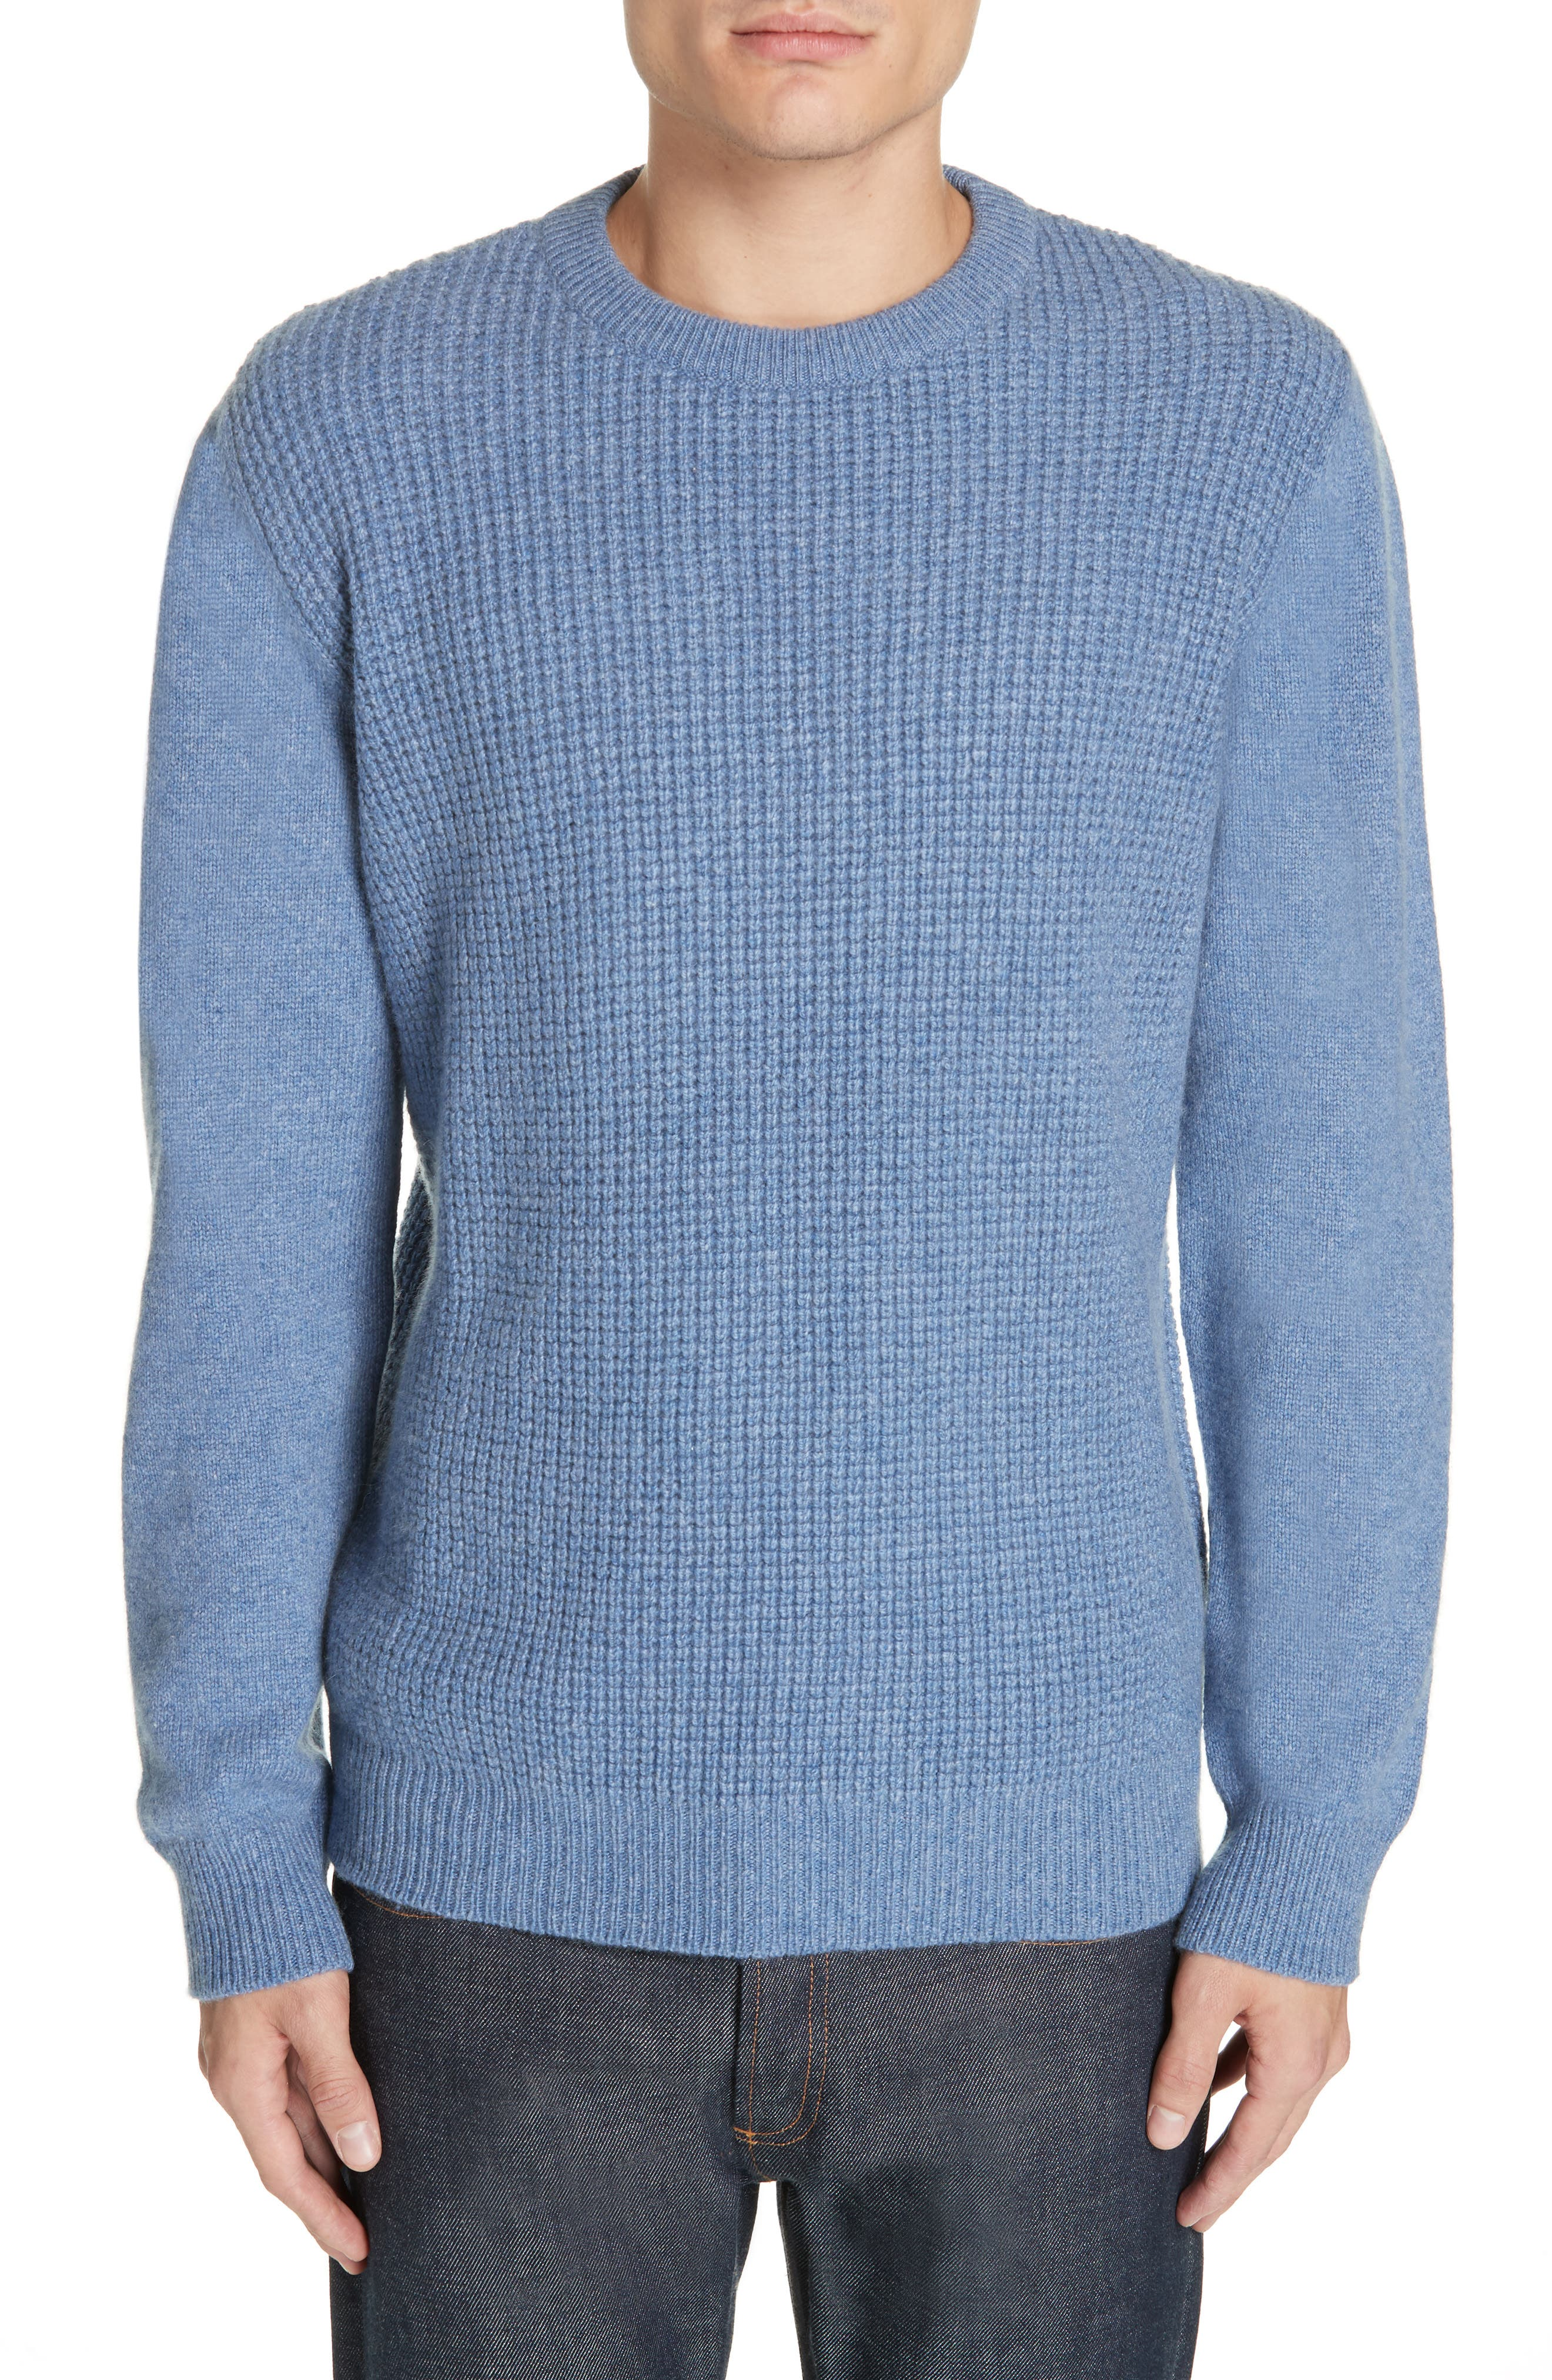 Waffle Knit Cashmere Crewneck Sweater,                             Main thumbnail 1, color,                             LIGHT BLUE